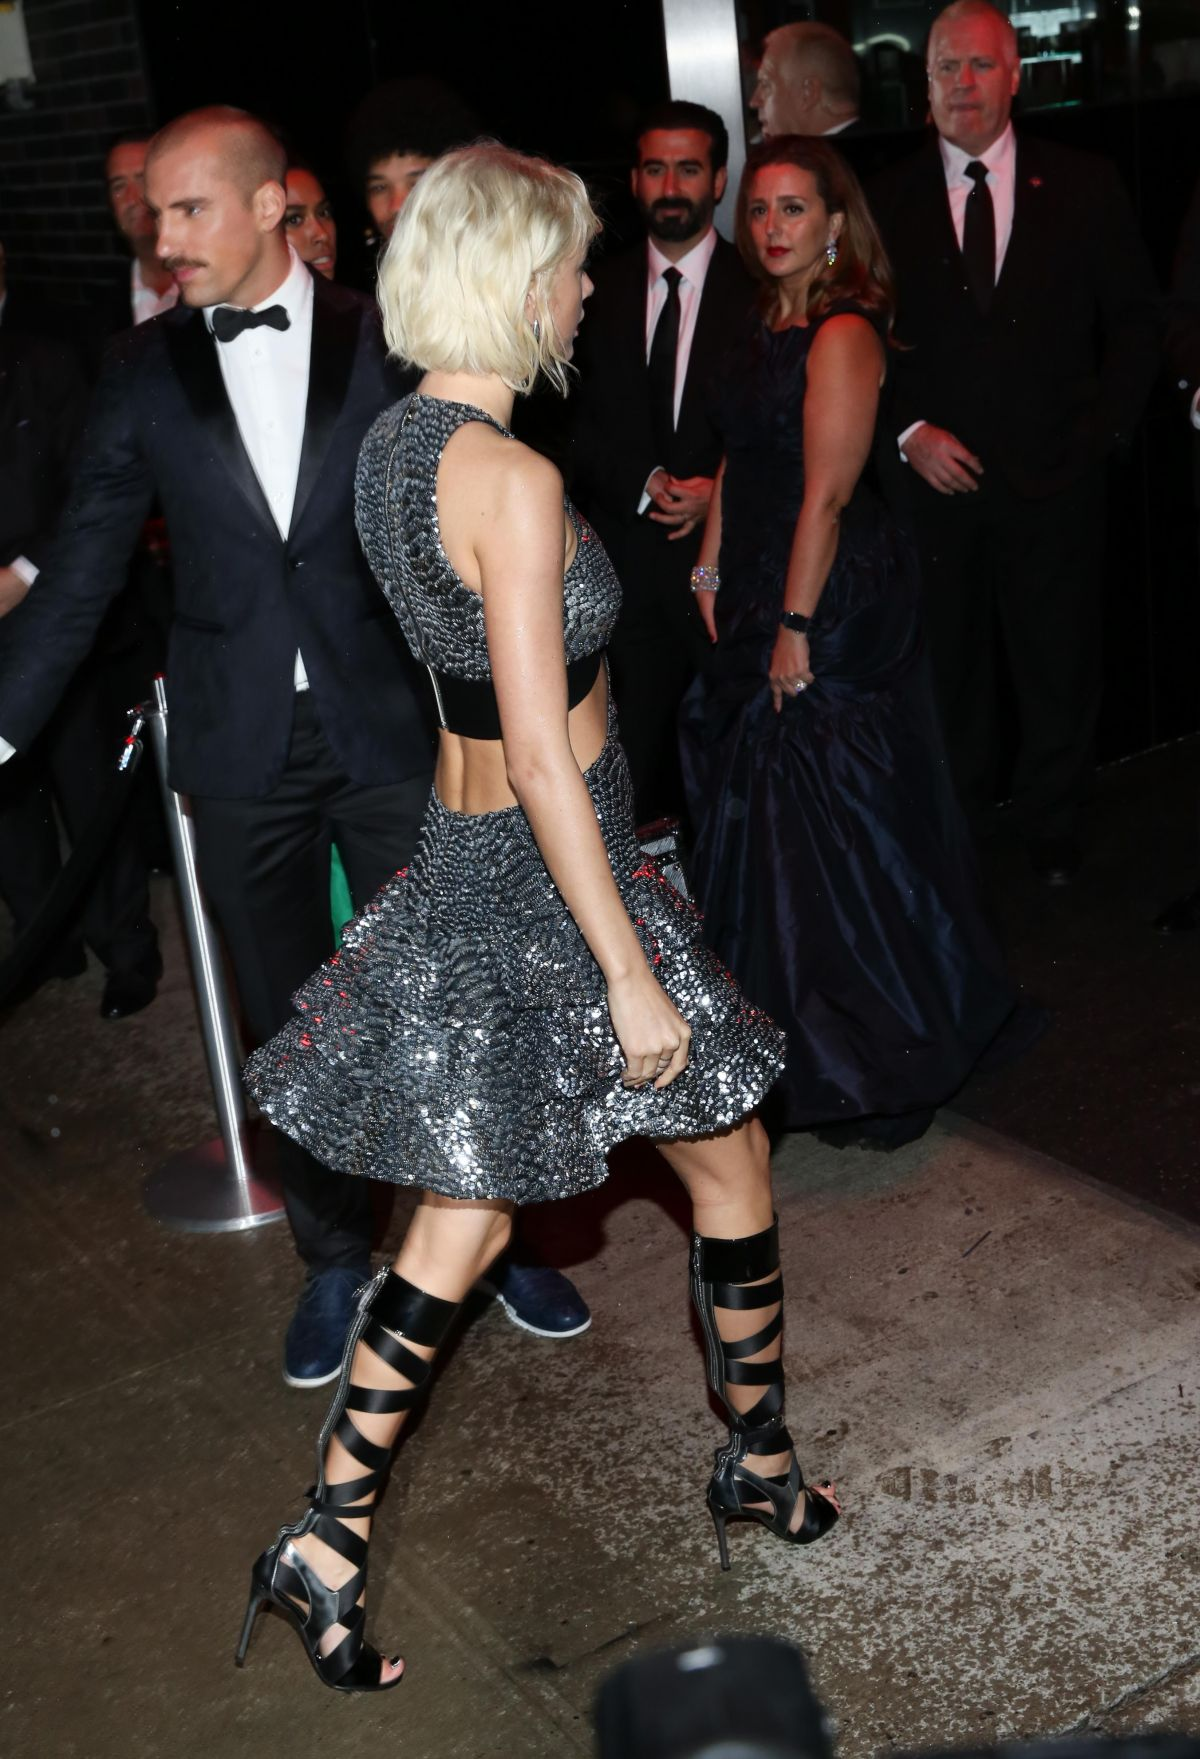 Taylor Swift Leaves Met Gala After Party In New York 05 02 2016 Hawtcelebs